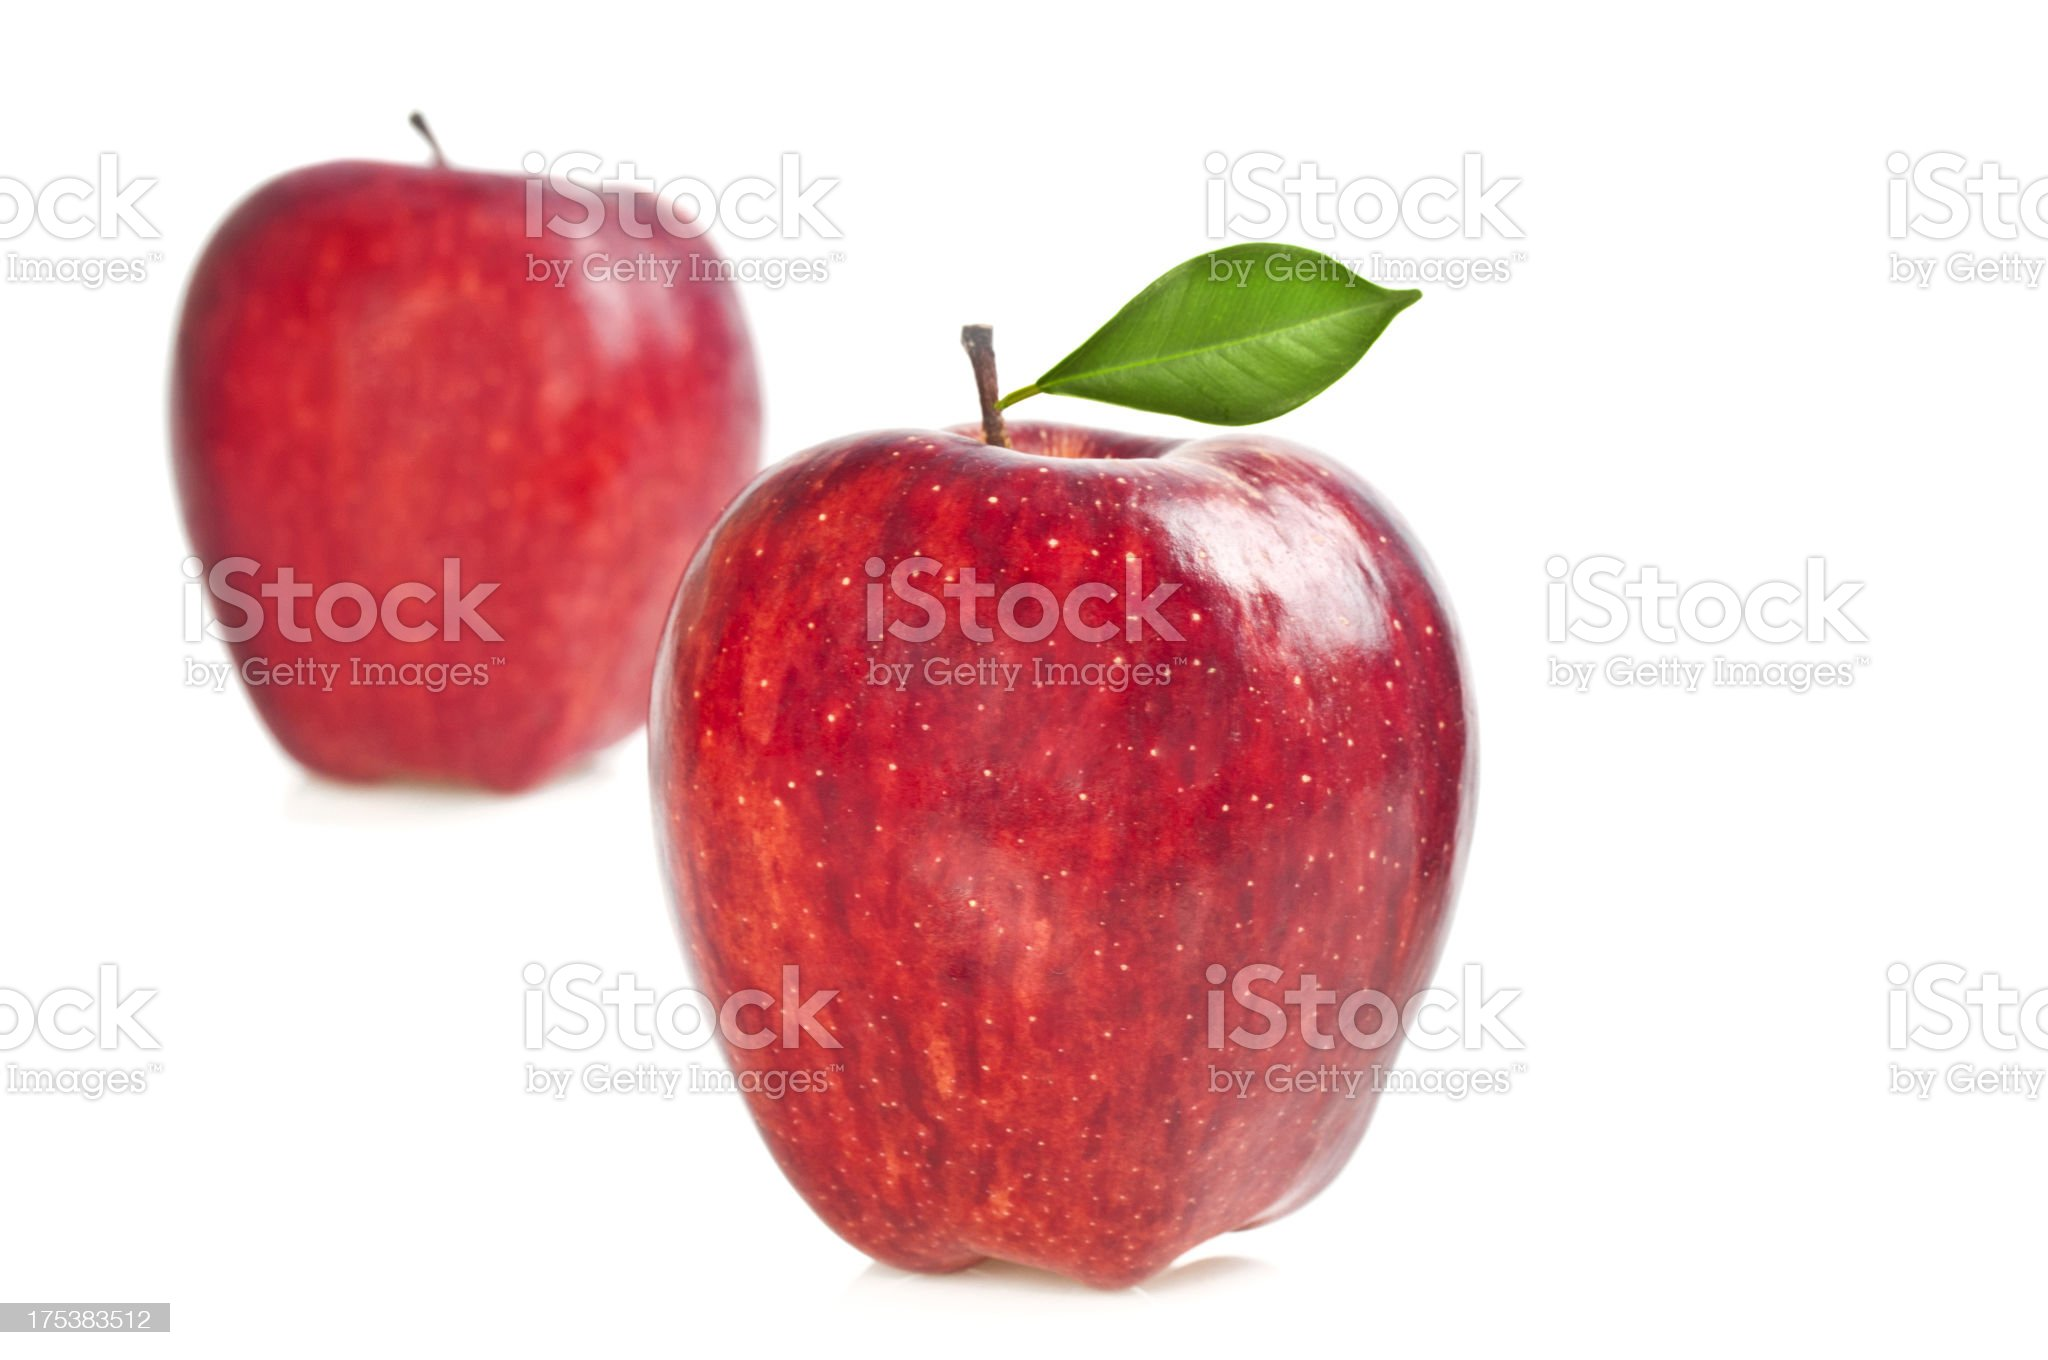 Two red apples royalty-free stock photo